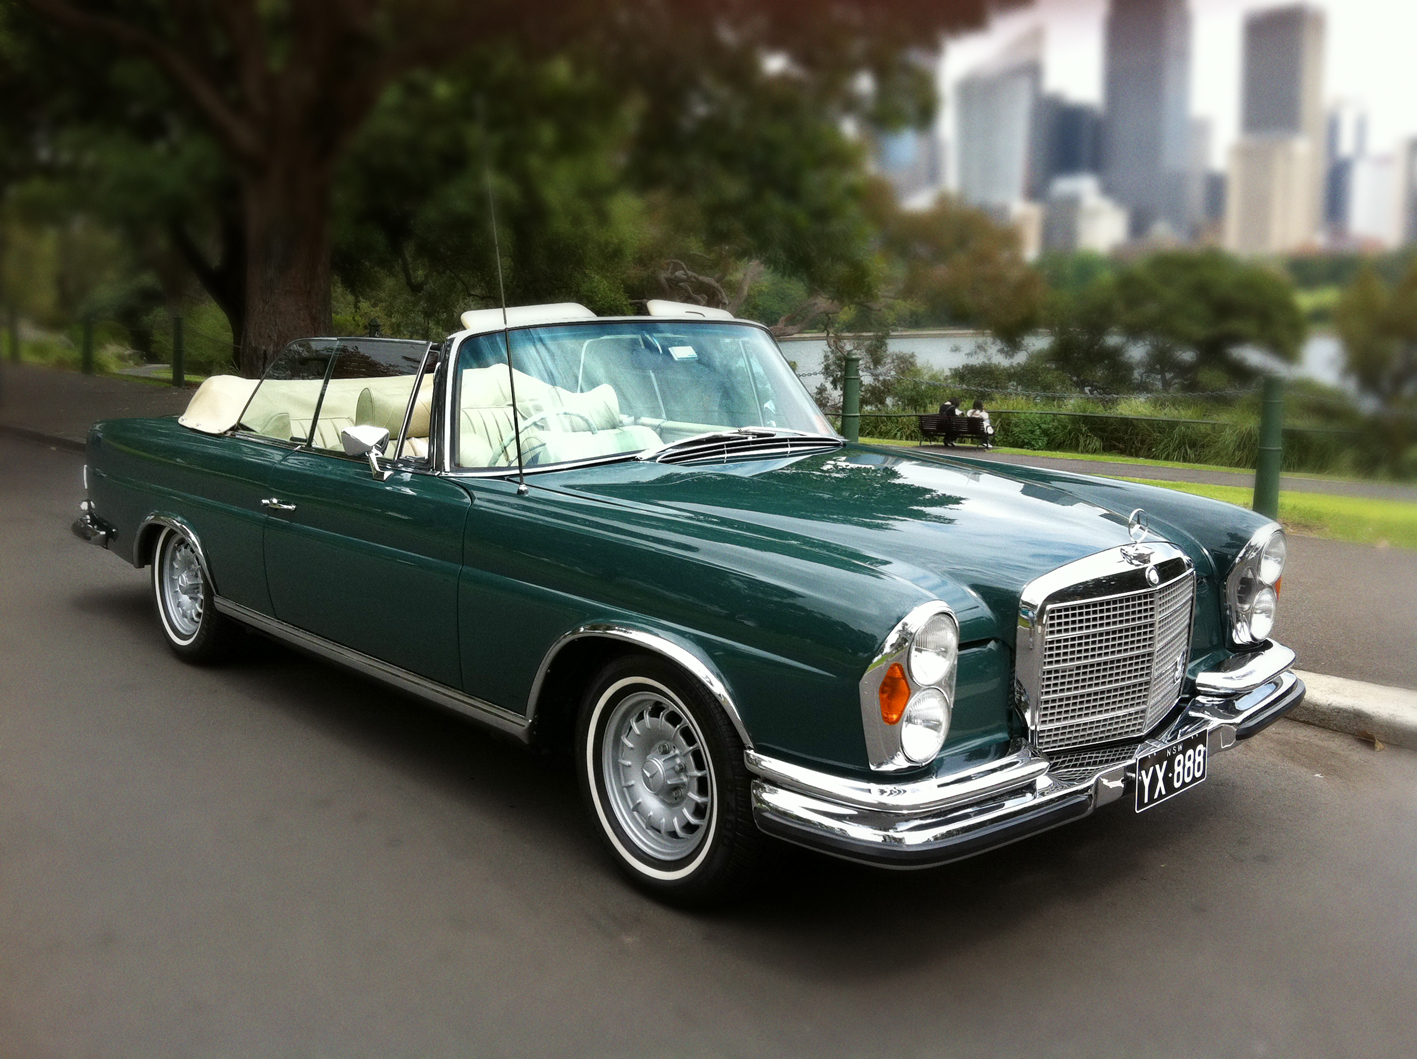 Mercedes benz 280se 3 5 cabriolet for sale for Mercedes benz cabriolet for sale